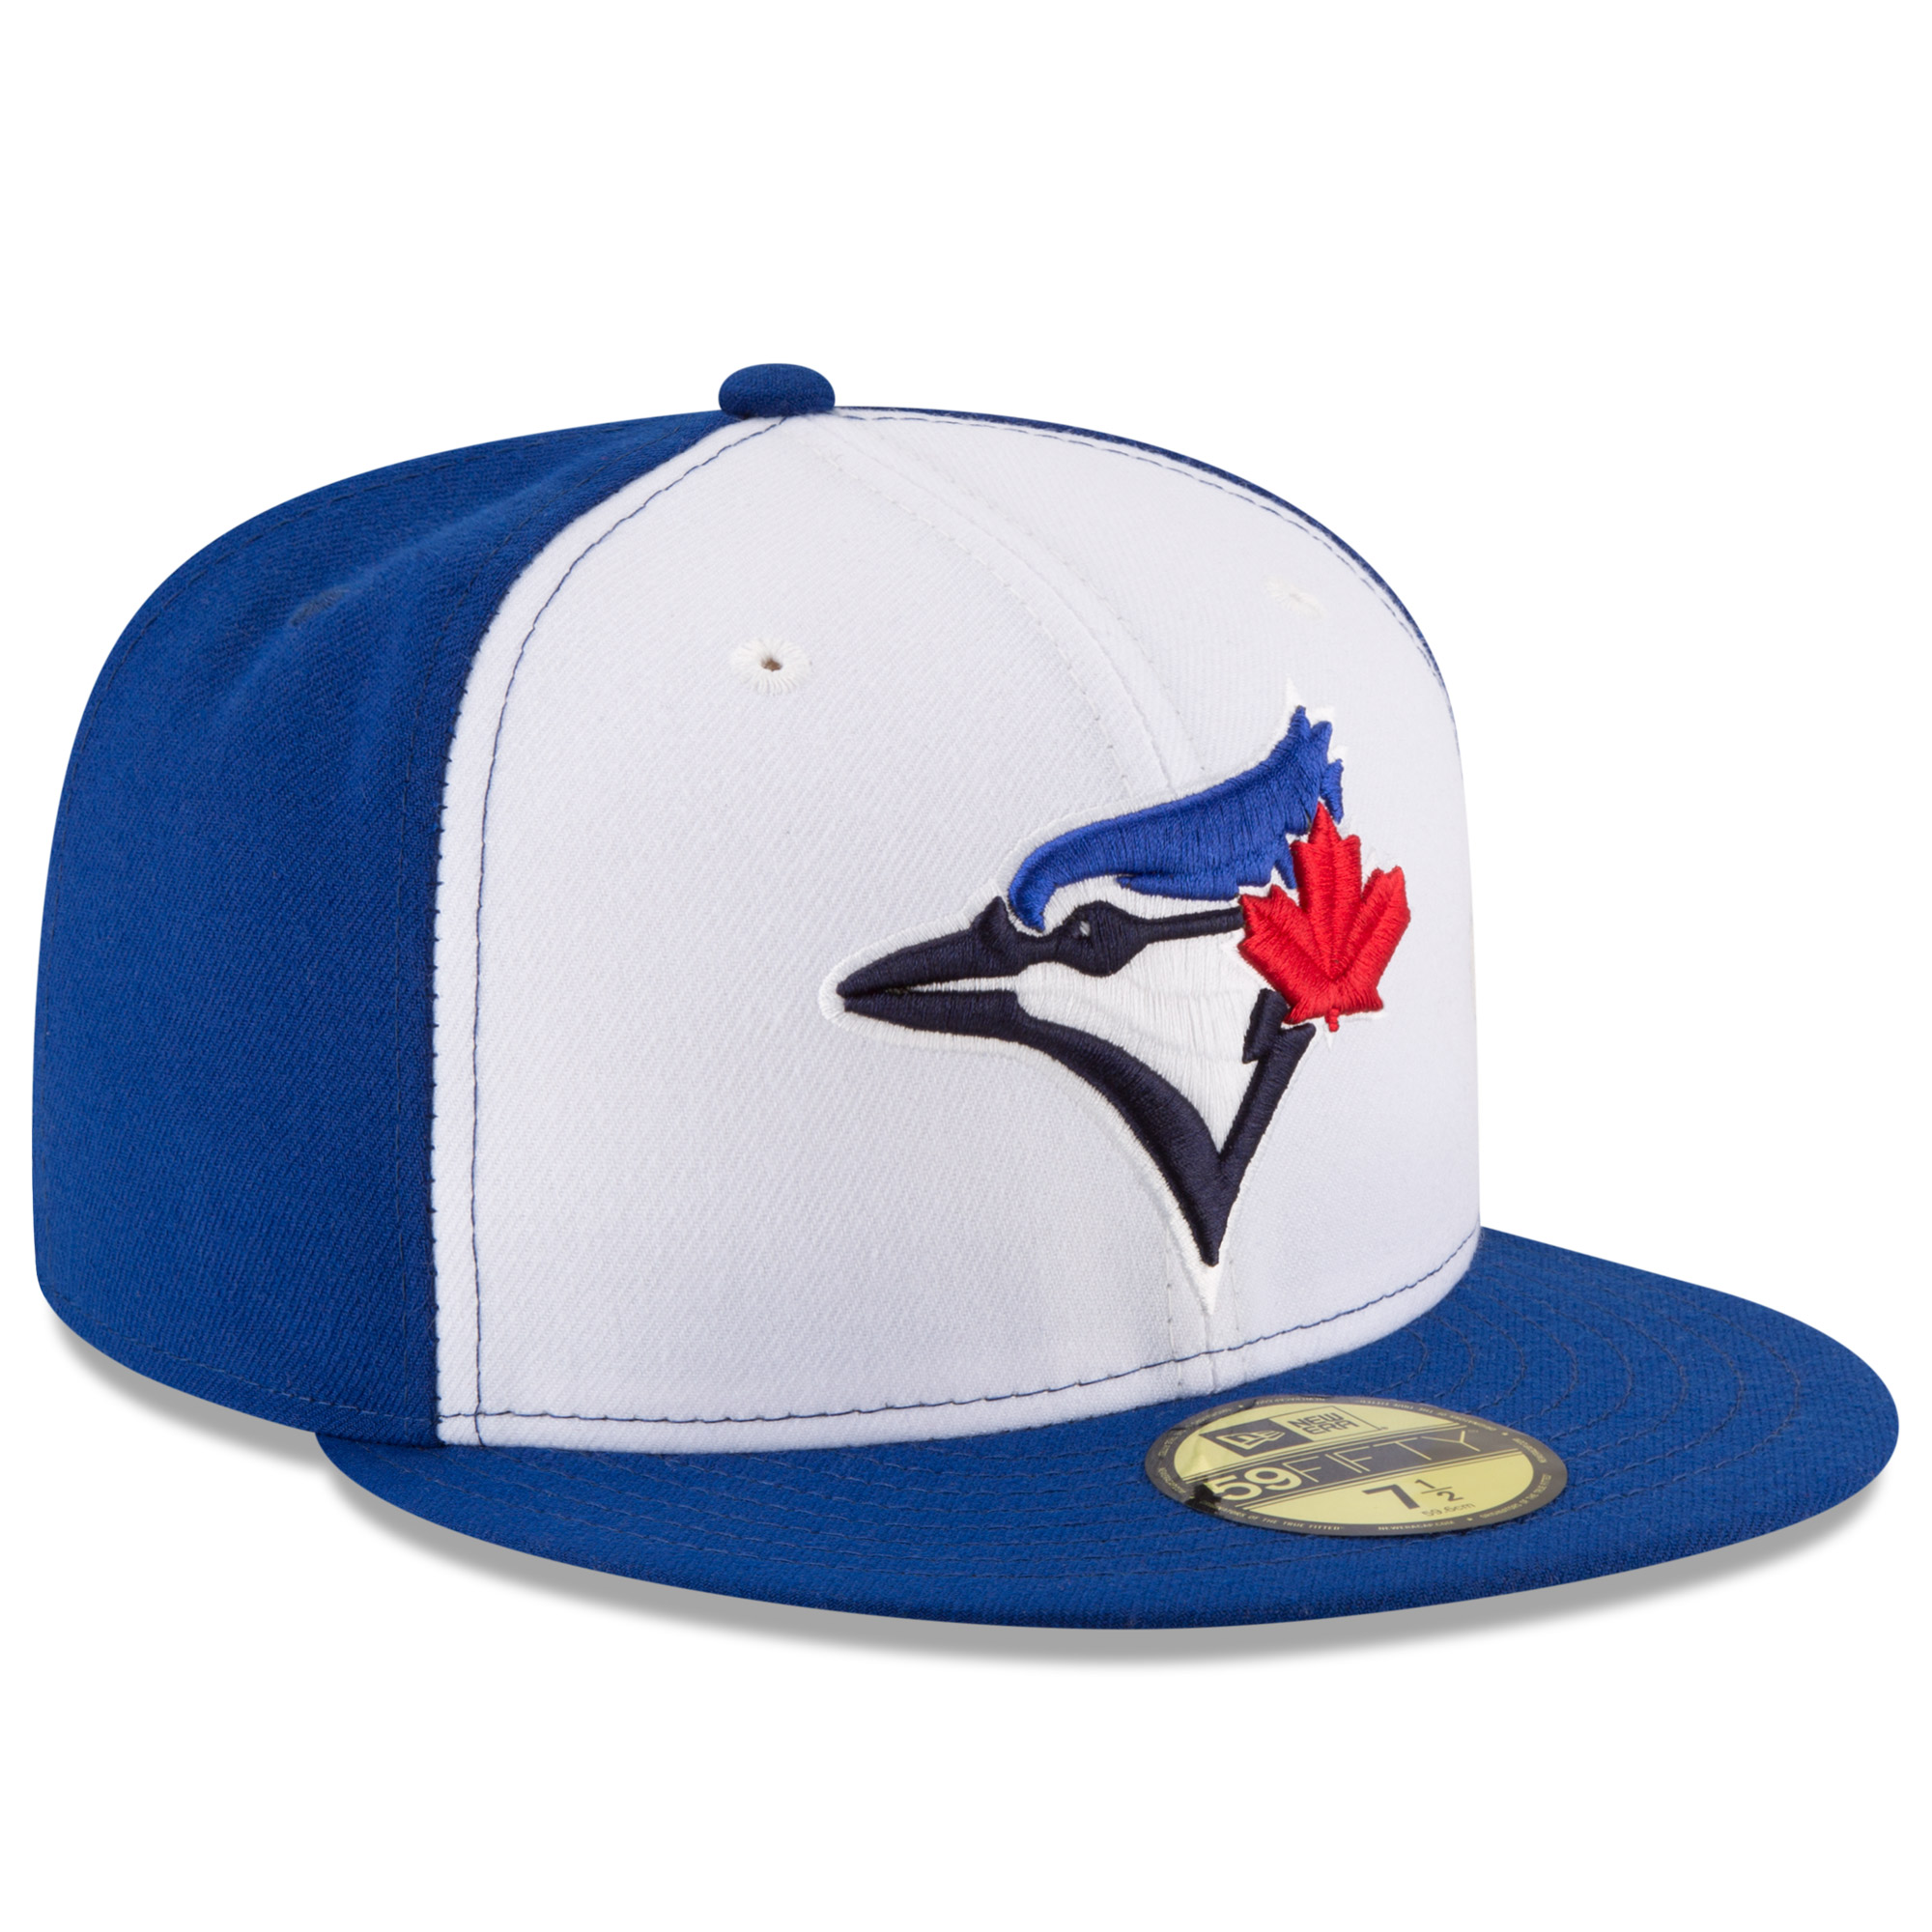 size 40 89920 4e9be ... toddler shimmer shine adjustable cap 3bcd8 b0f96 spain toronto blue  jays new era 40th anniversary 59fifty fitted hat white blue walmart 12045  f5195 ...